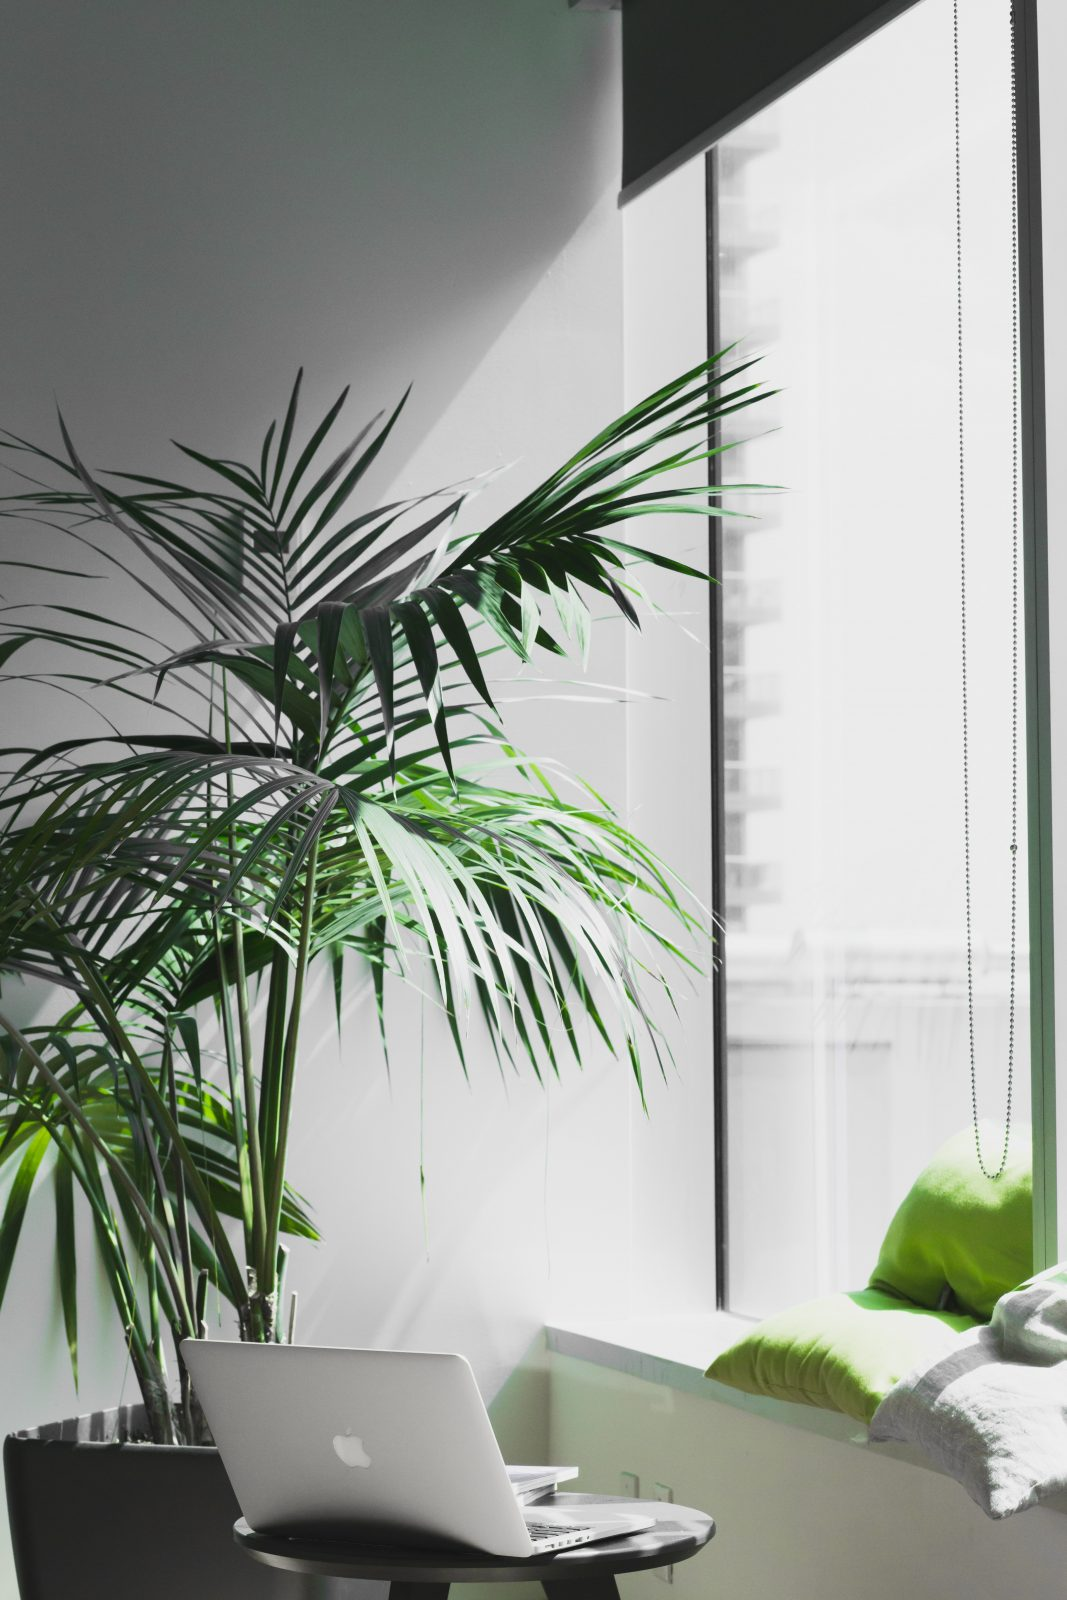 Big Plants For Living Room Stop 4 Things You Should Stop Comparing In Your Life